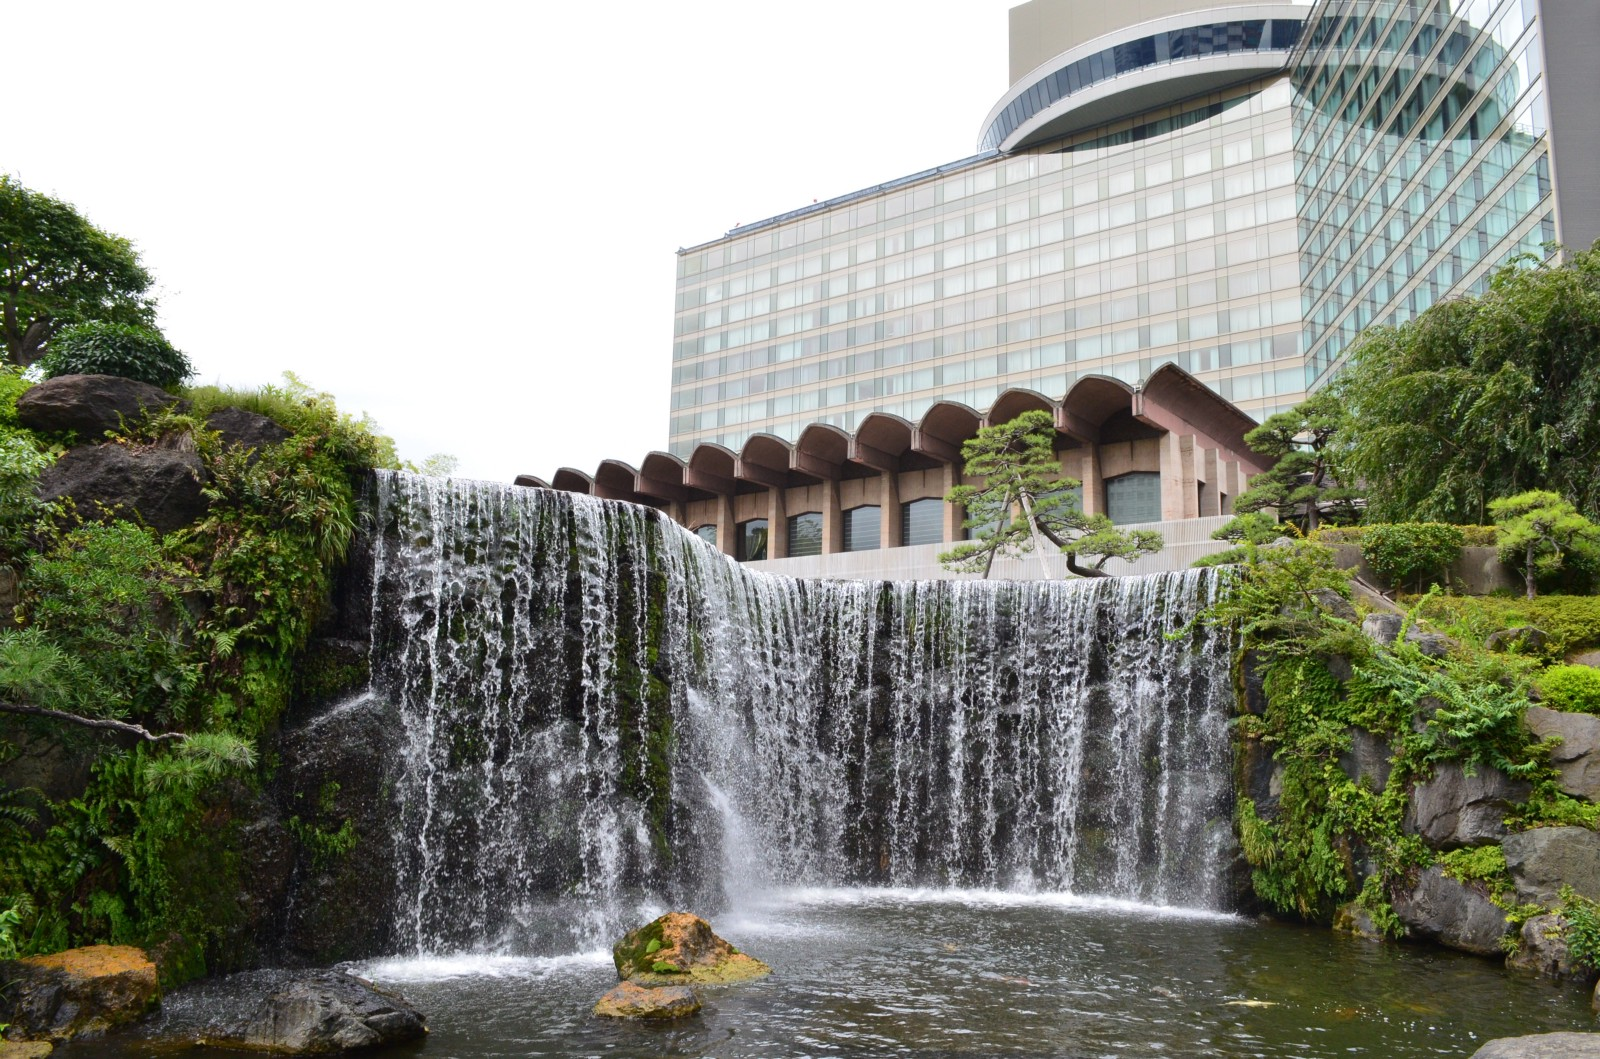 Visit The Beautiful Japanese Garden At Hotel New Otani Tokyo For FREE